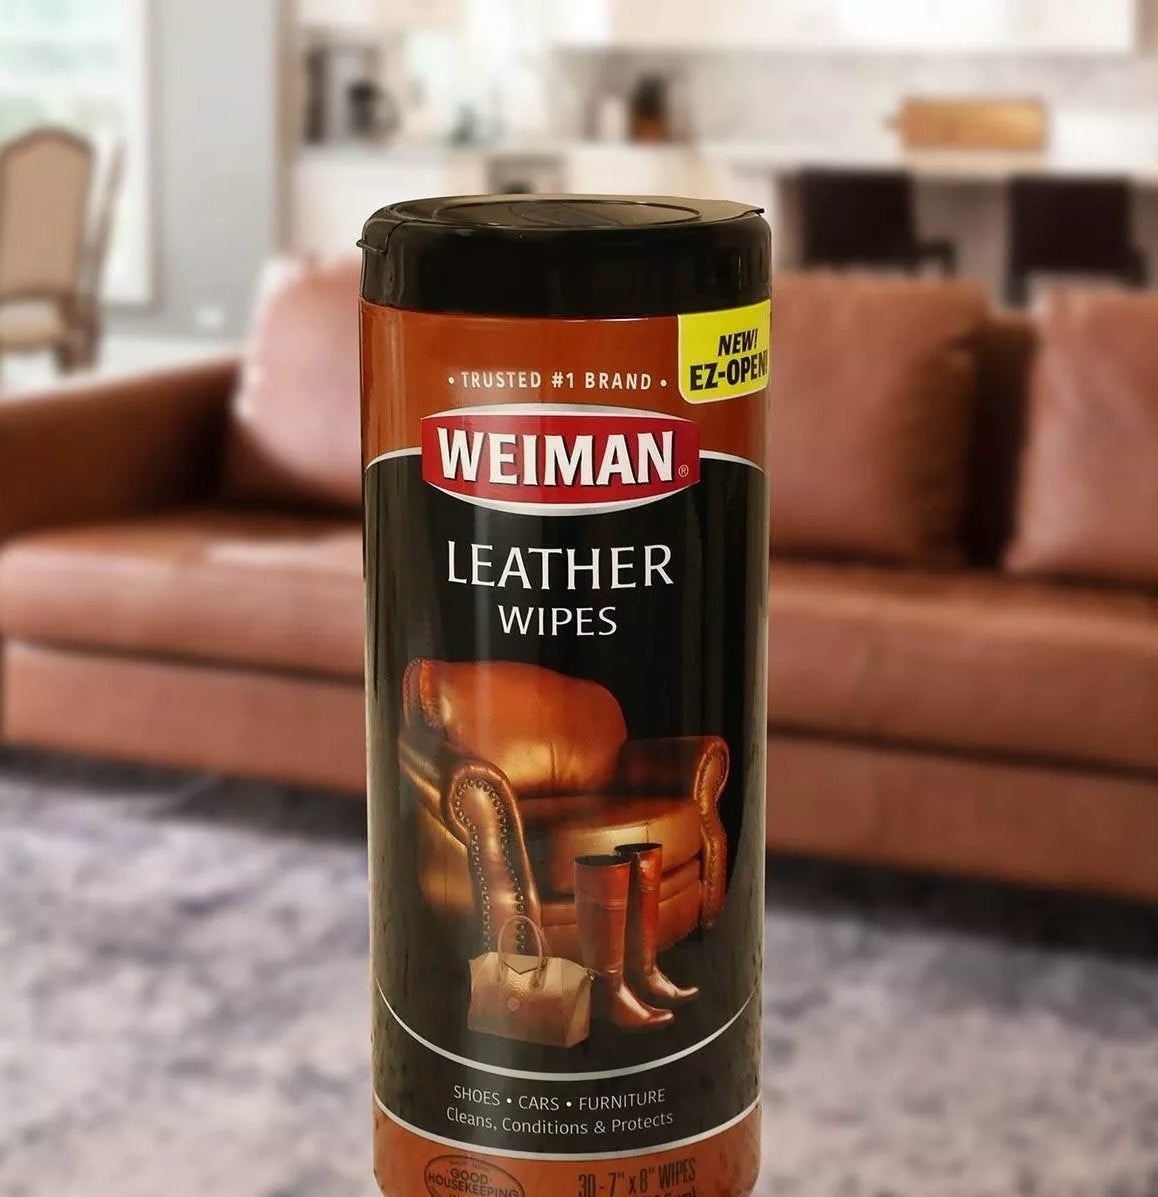 The container of 30 leather wipes which clean, condition, and protect shoes, cars, and furniture